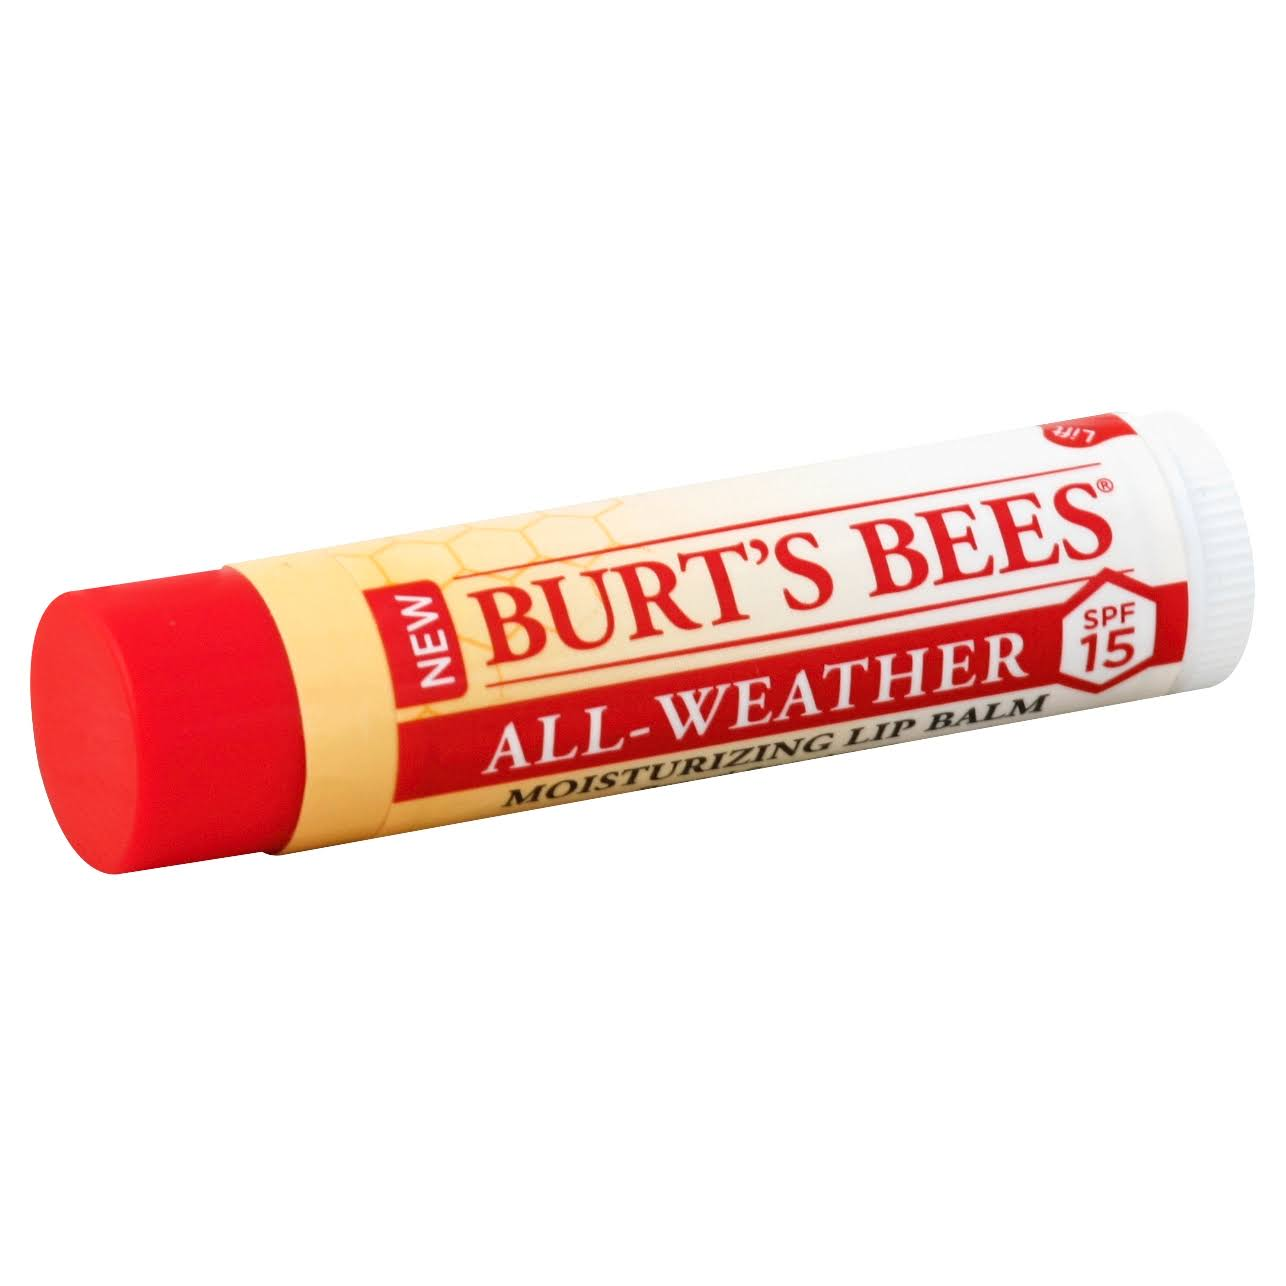 Burts Bees All Weather Moisturizing Lip Balm - SPF 15